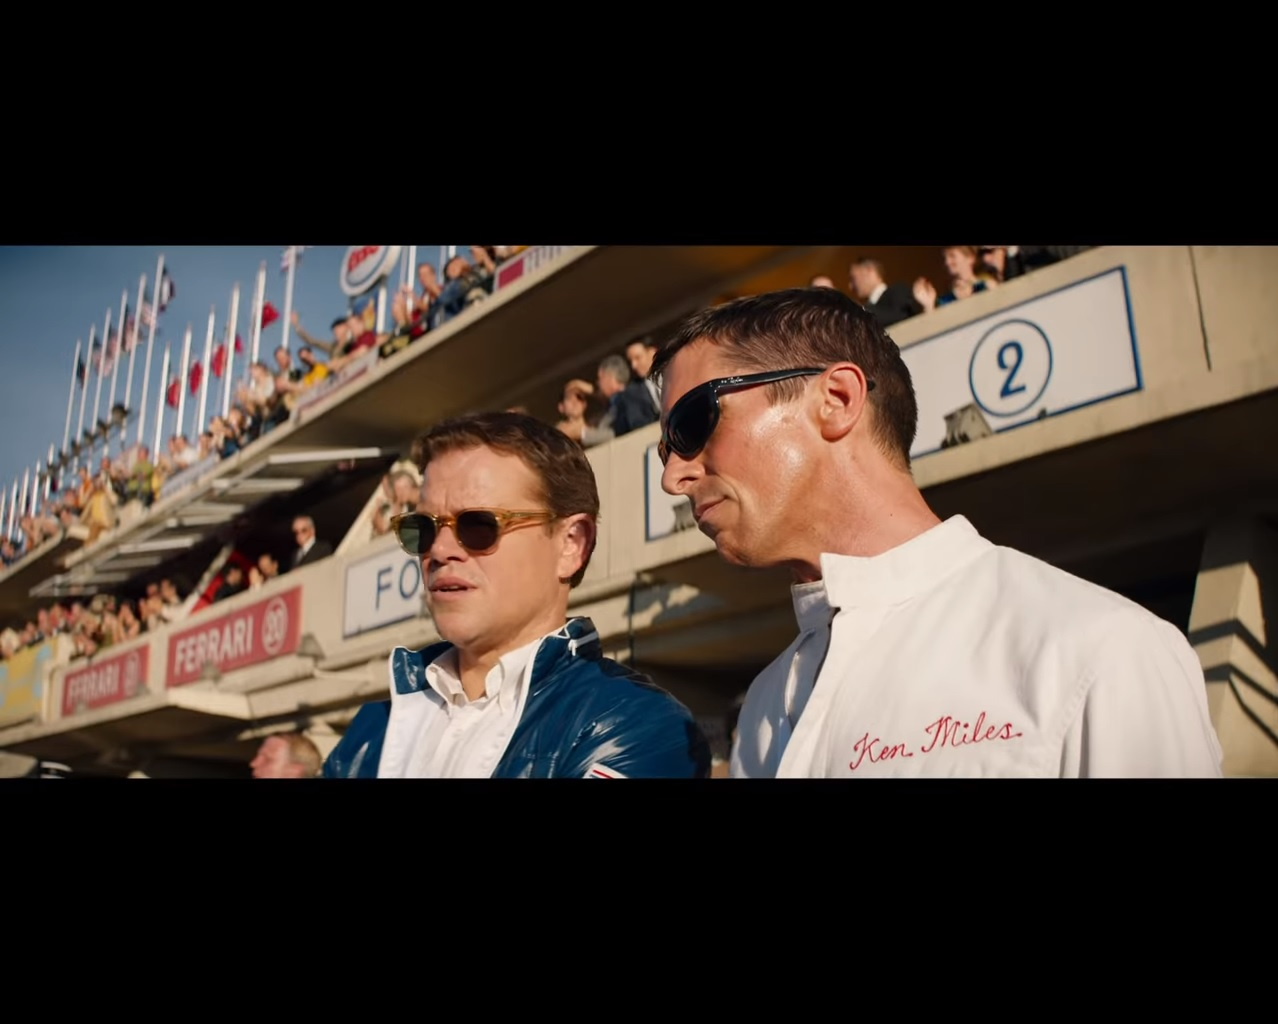 Ford v Ferrari (2019) - Movie Trailer #2